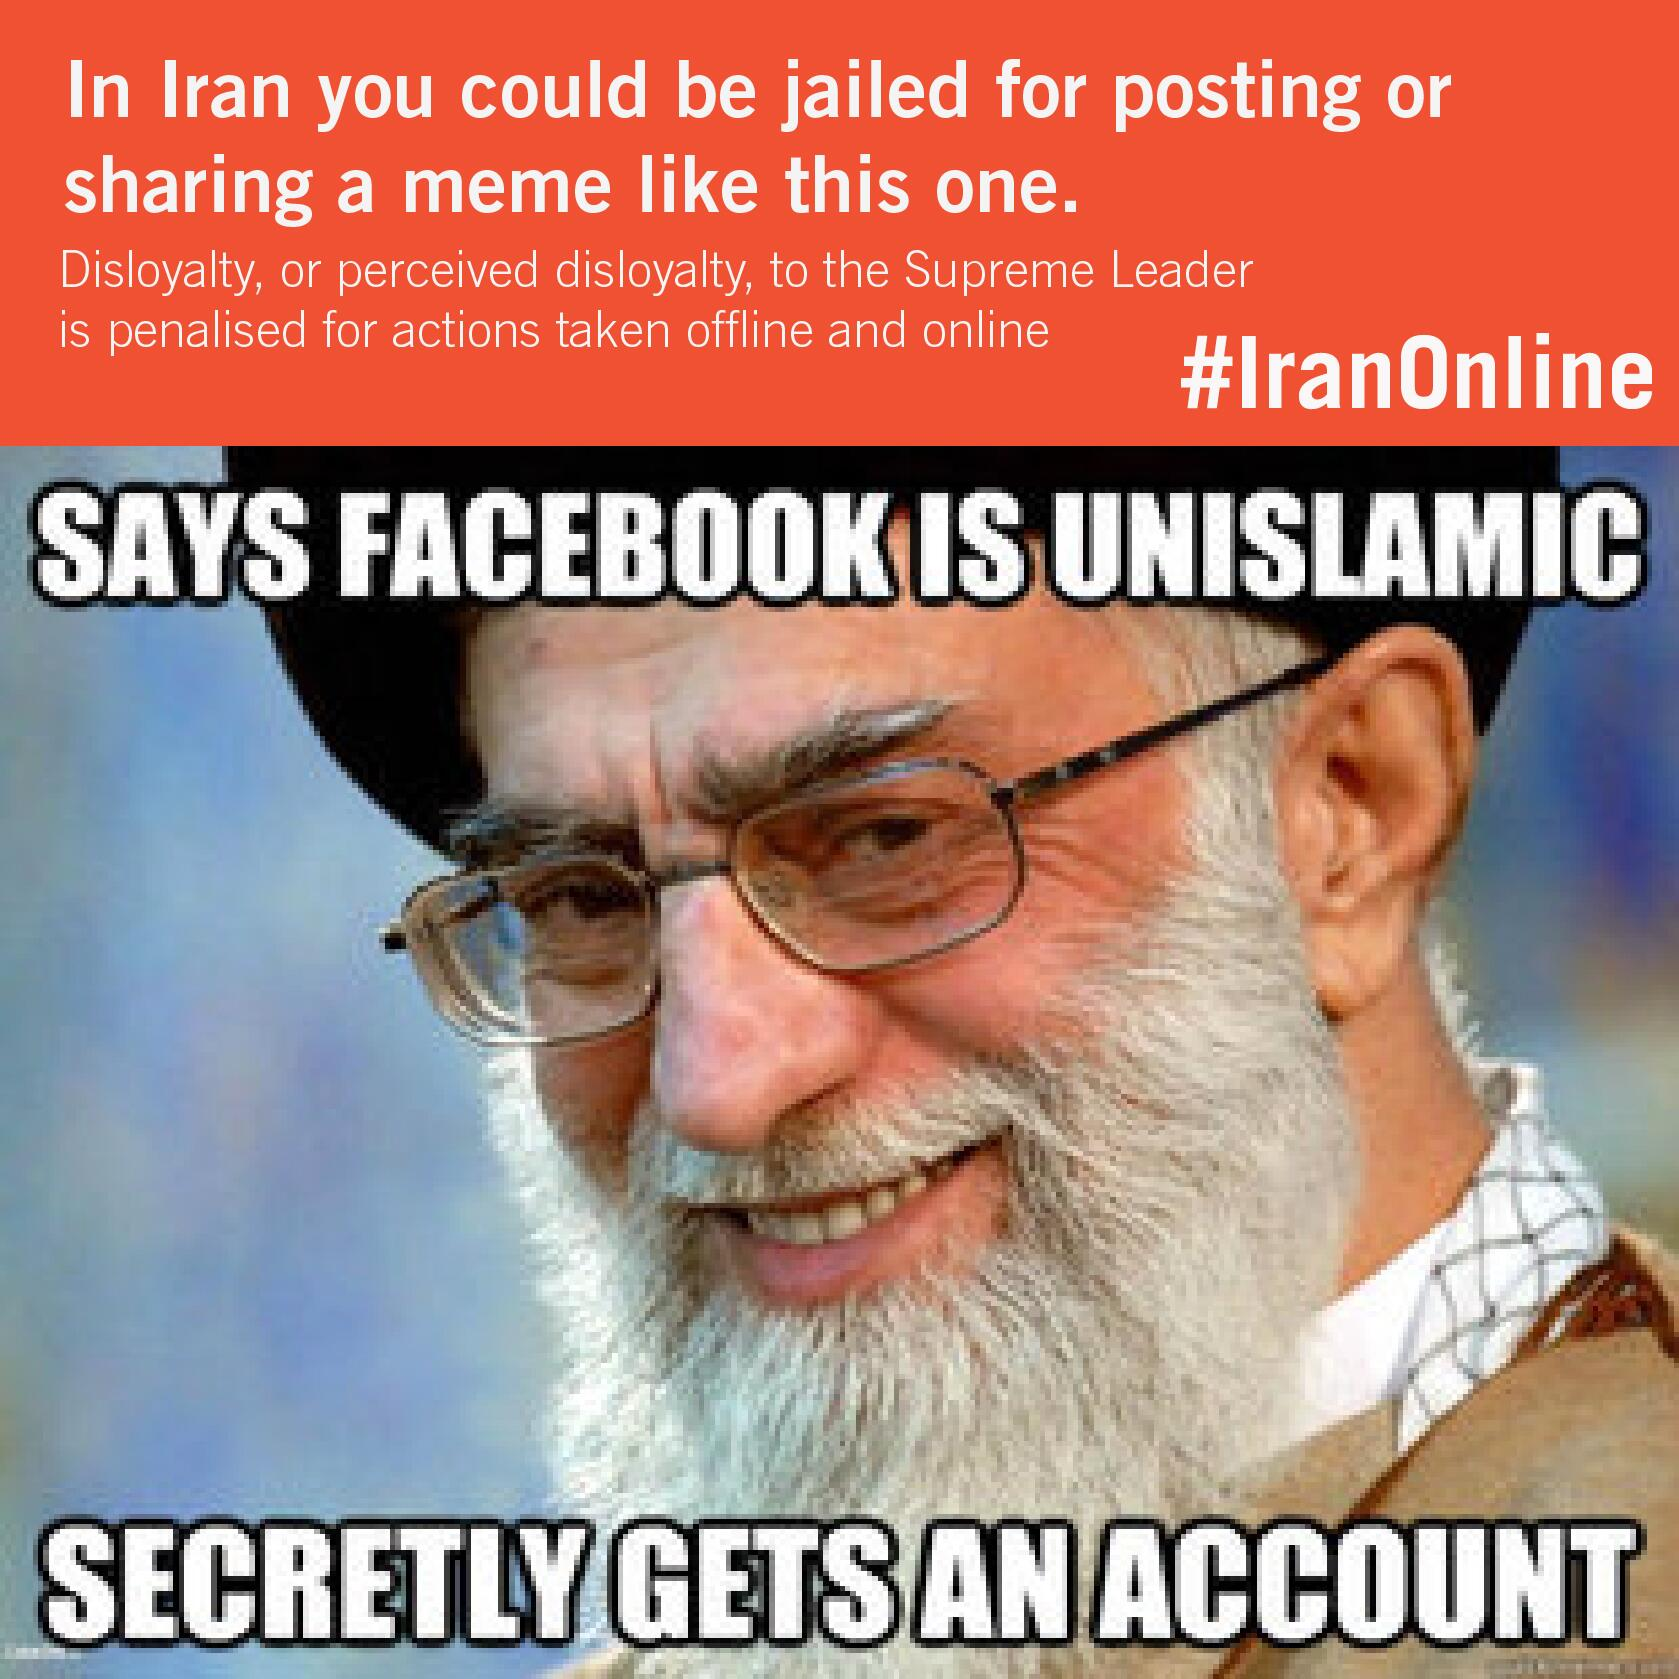 @article19org: In Iran you can go to jail for posting memes [like this one]  #IranOnline